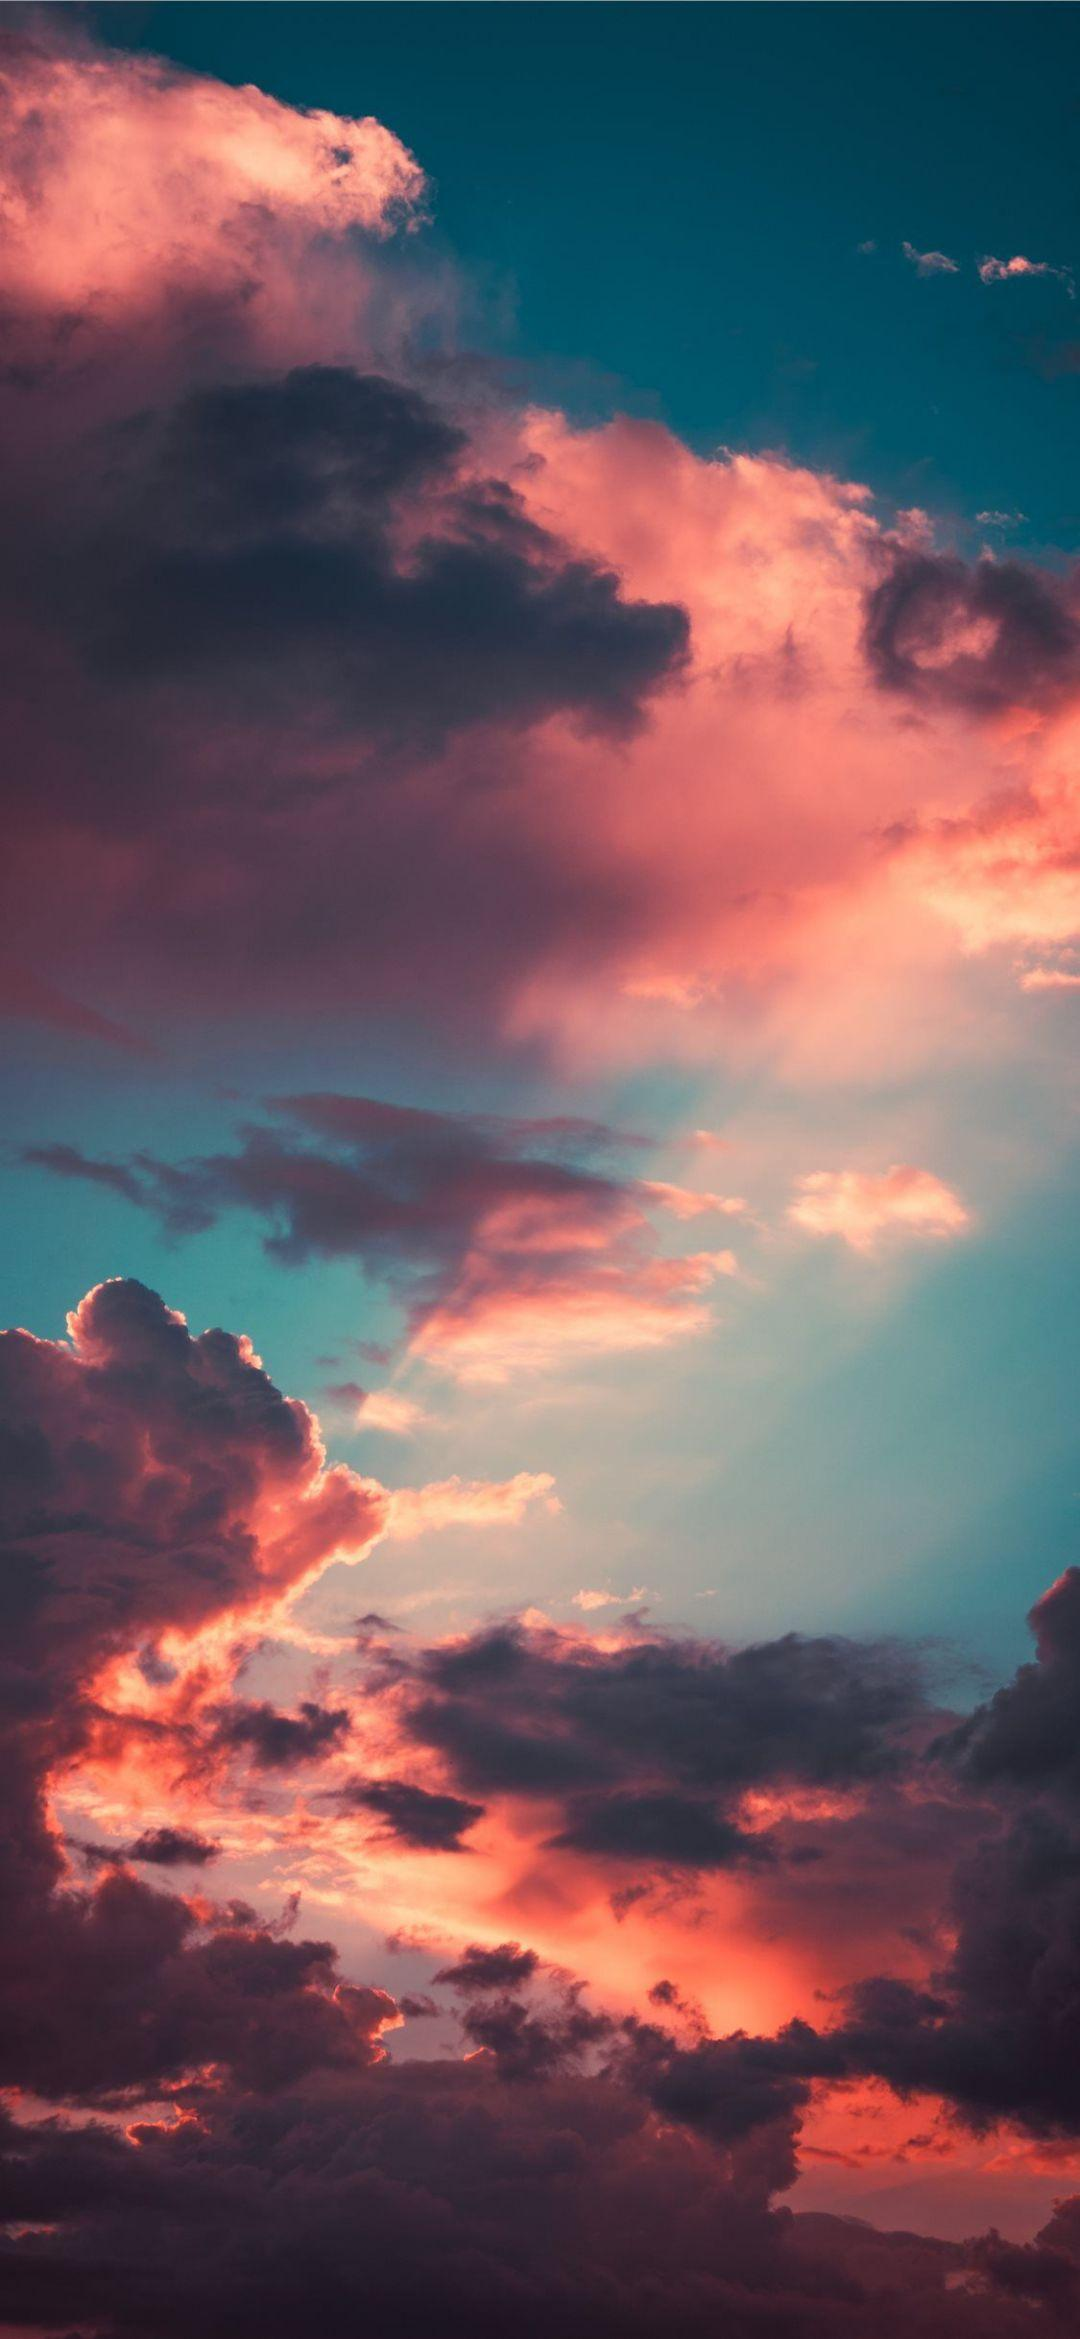 Aesthetic Clouds HD Wallpapers - Wallpaper Cave